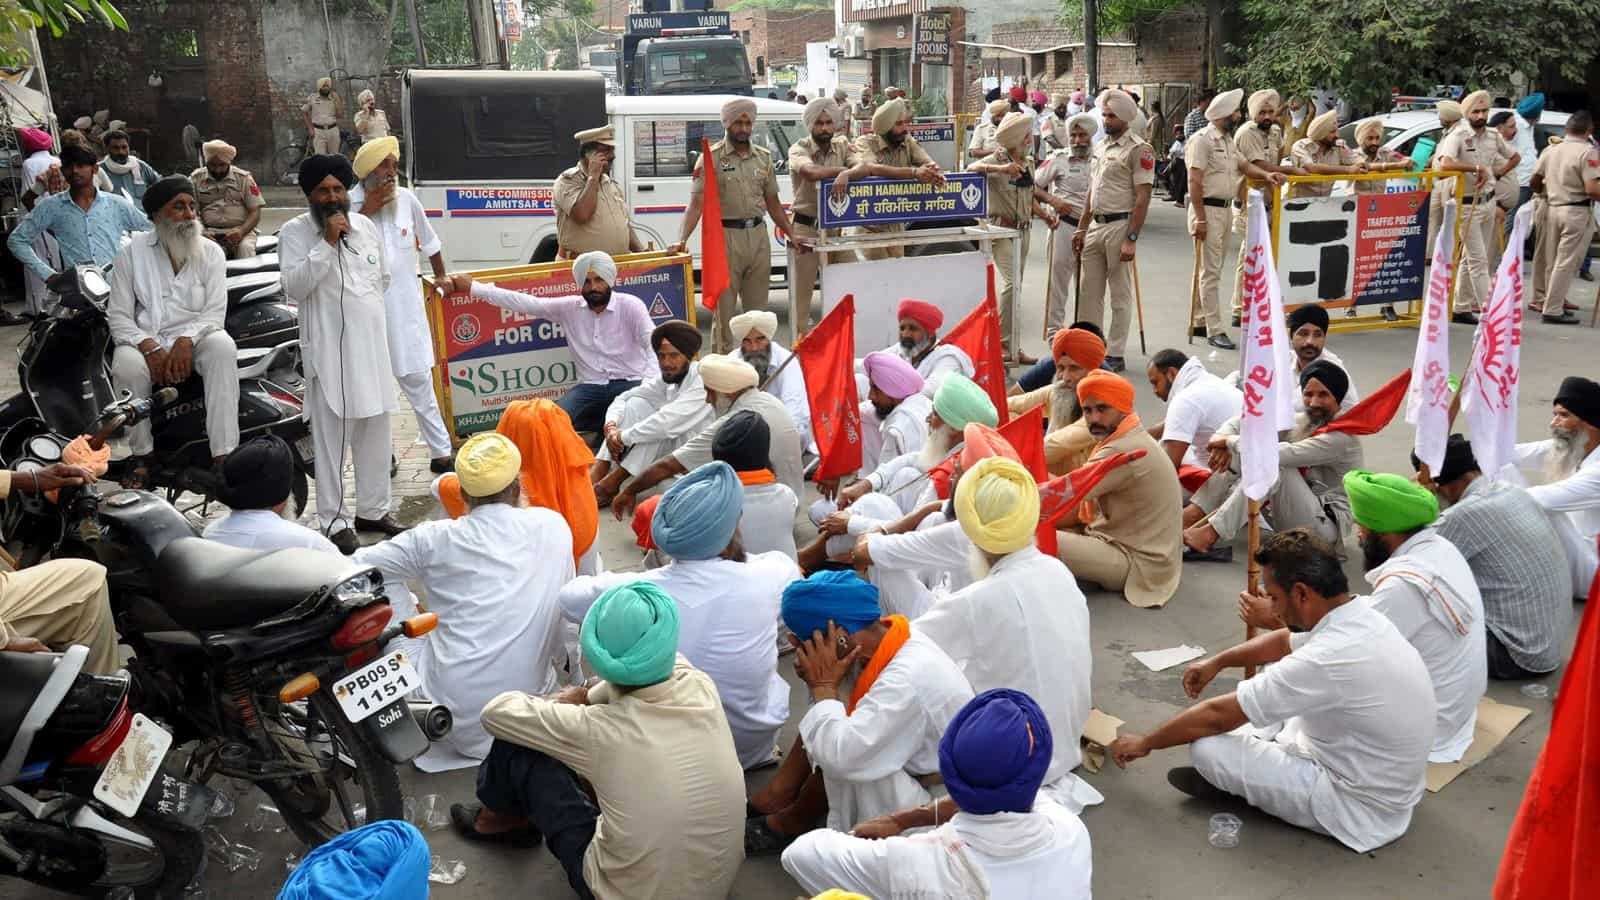 Farmers block highways in Haryana after police in Karnal lathi-charge protesters; 10 injured